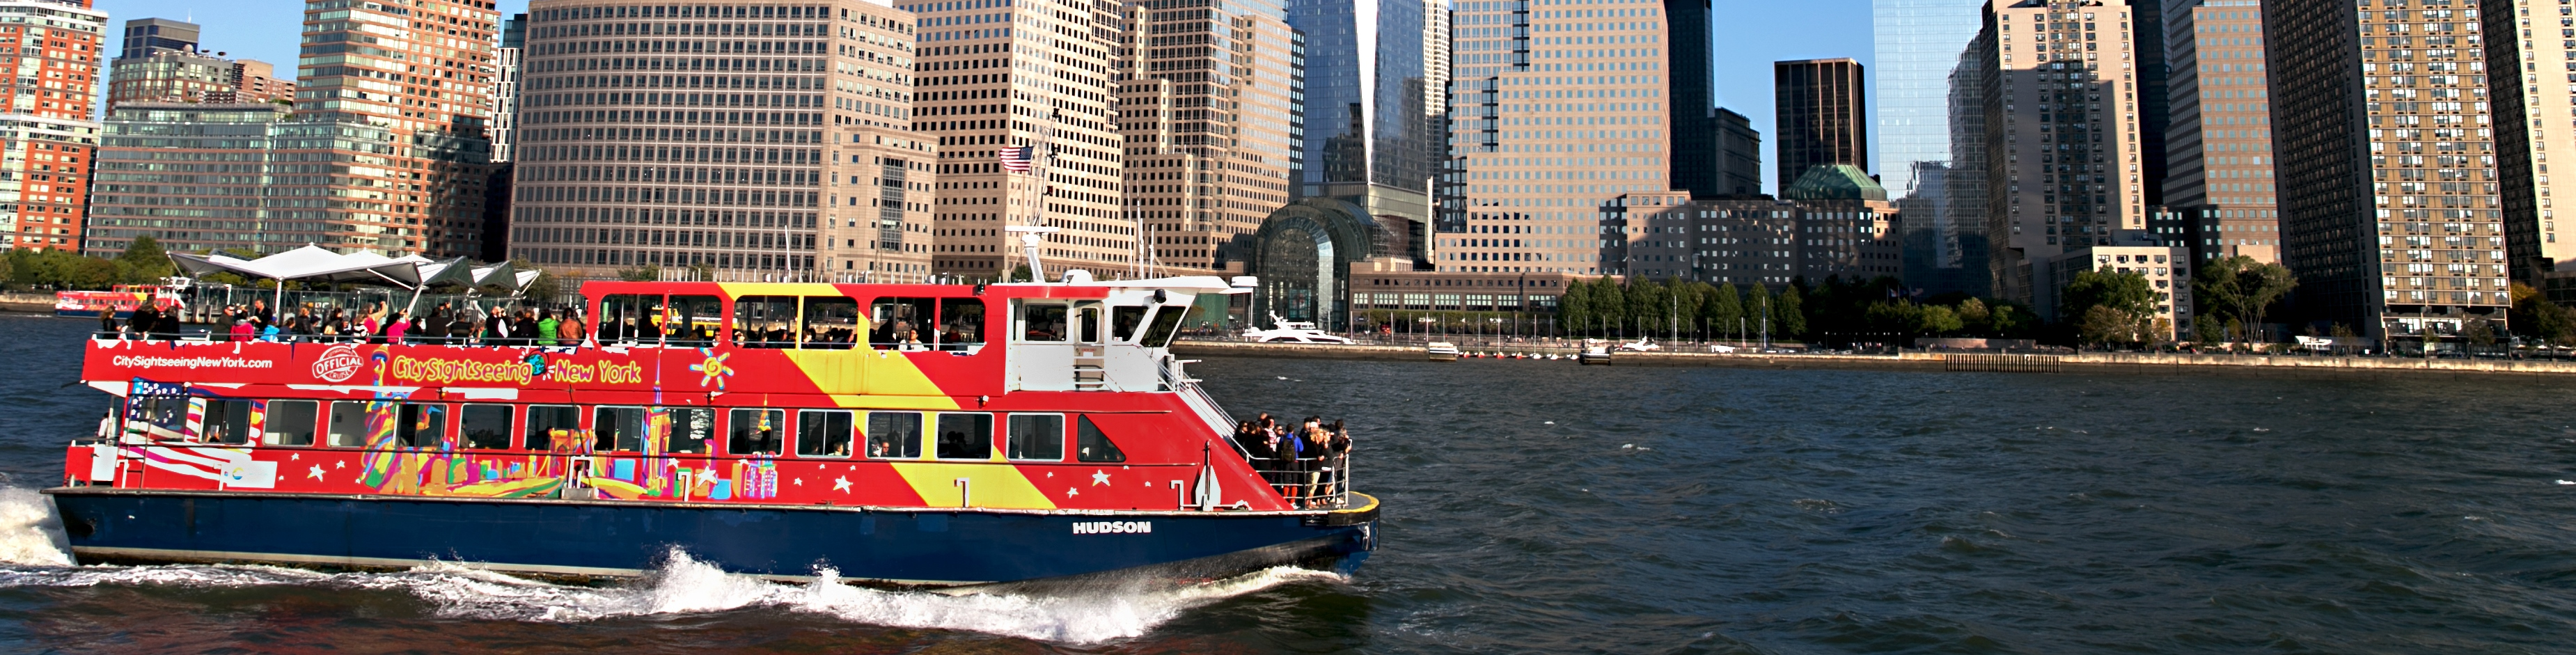 CitySightseeing New York hop-on hop-off Cruise